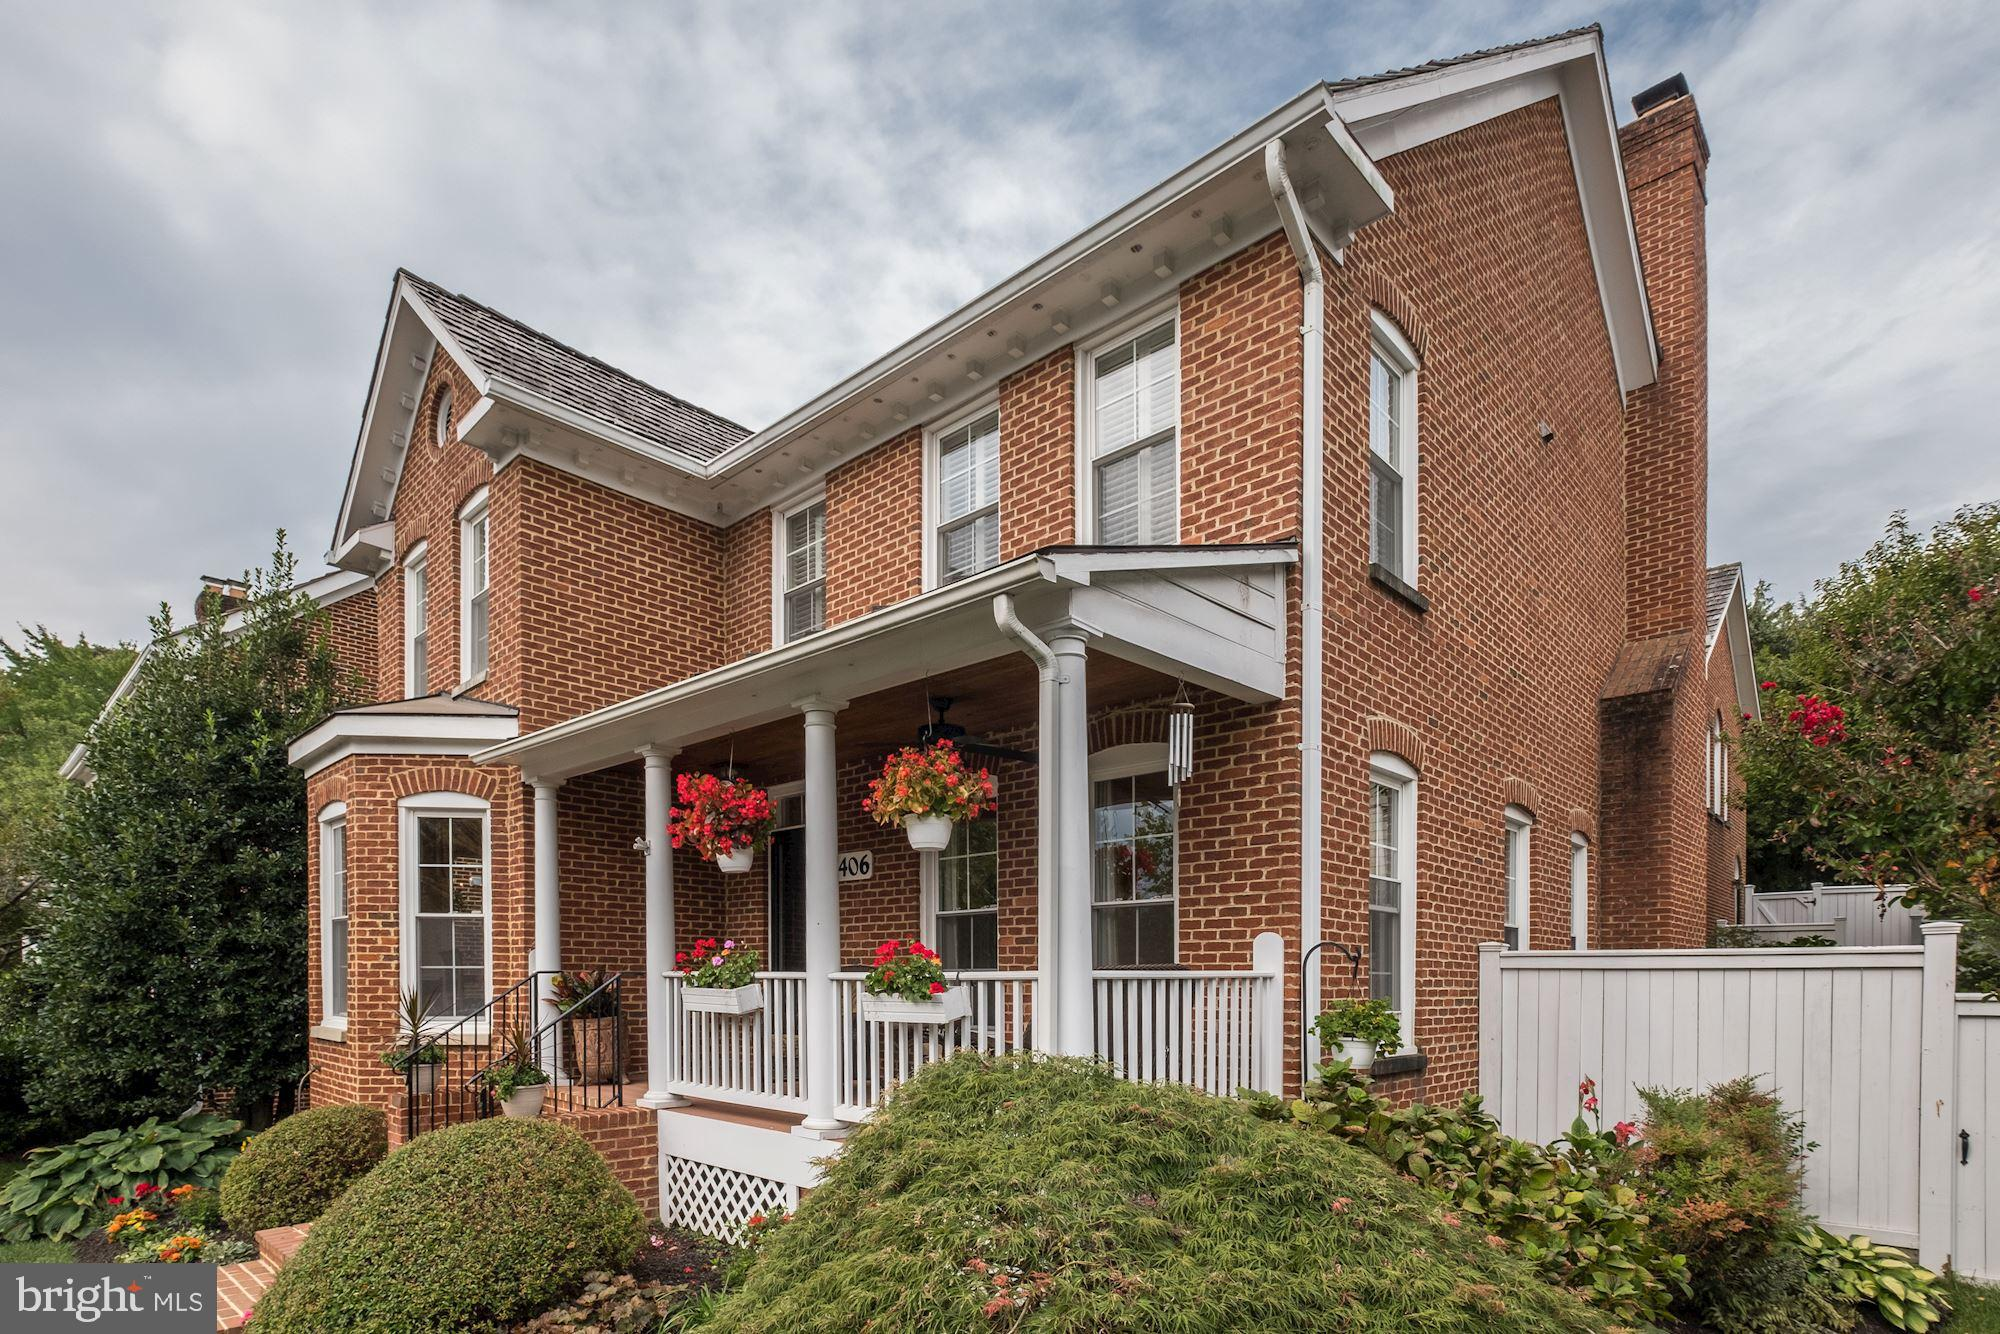 406 TSCHIFFELY SQUARE ROAD, GAITHERSBURG, MD 20878